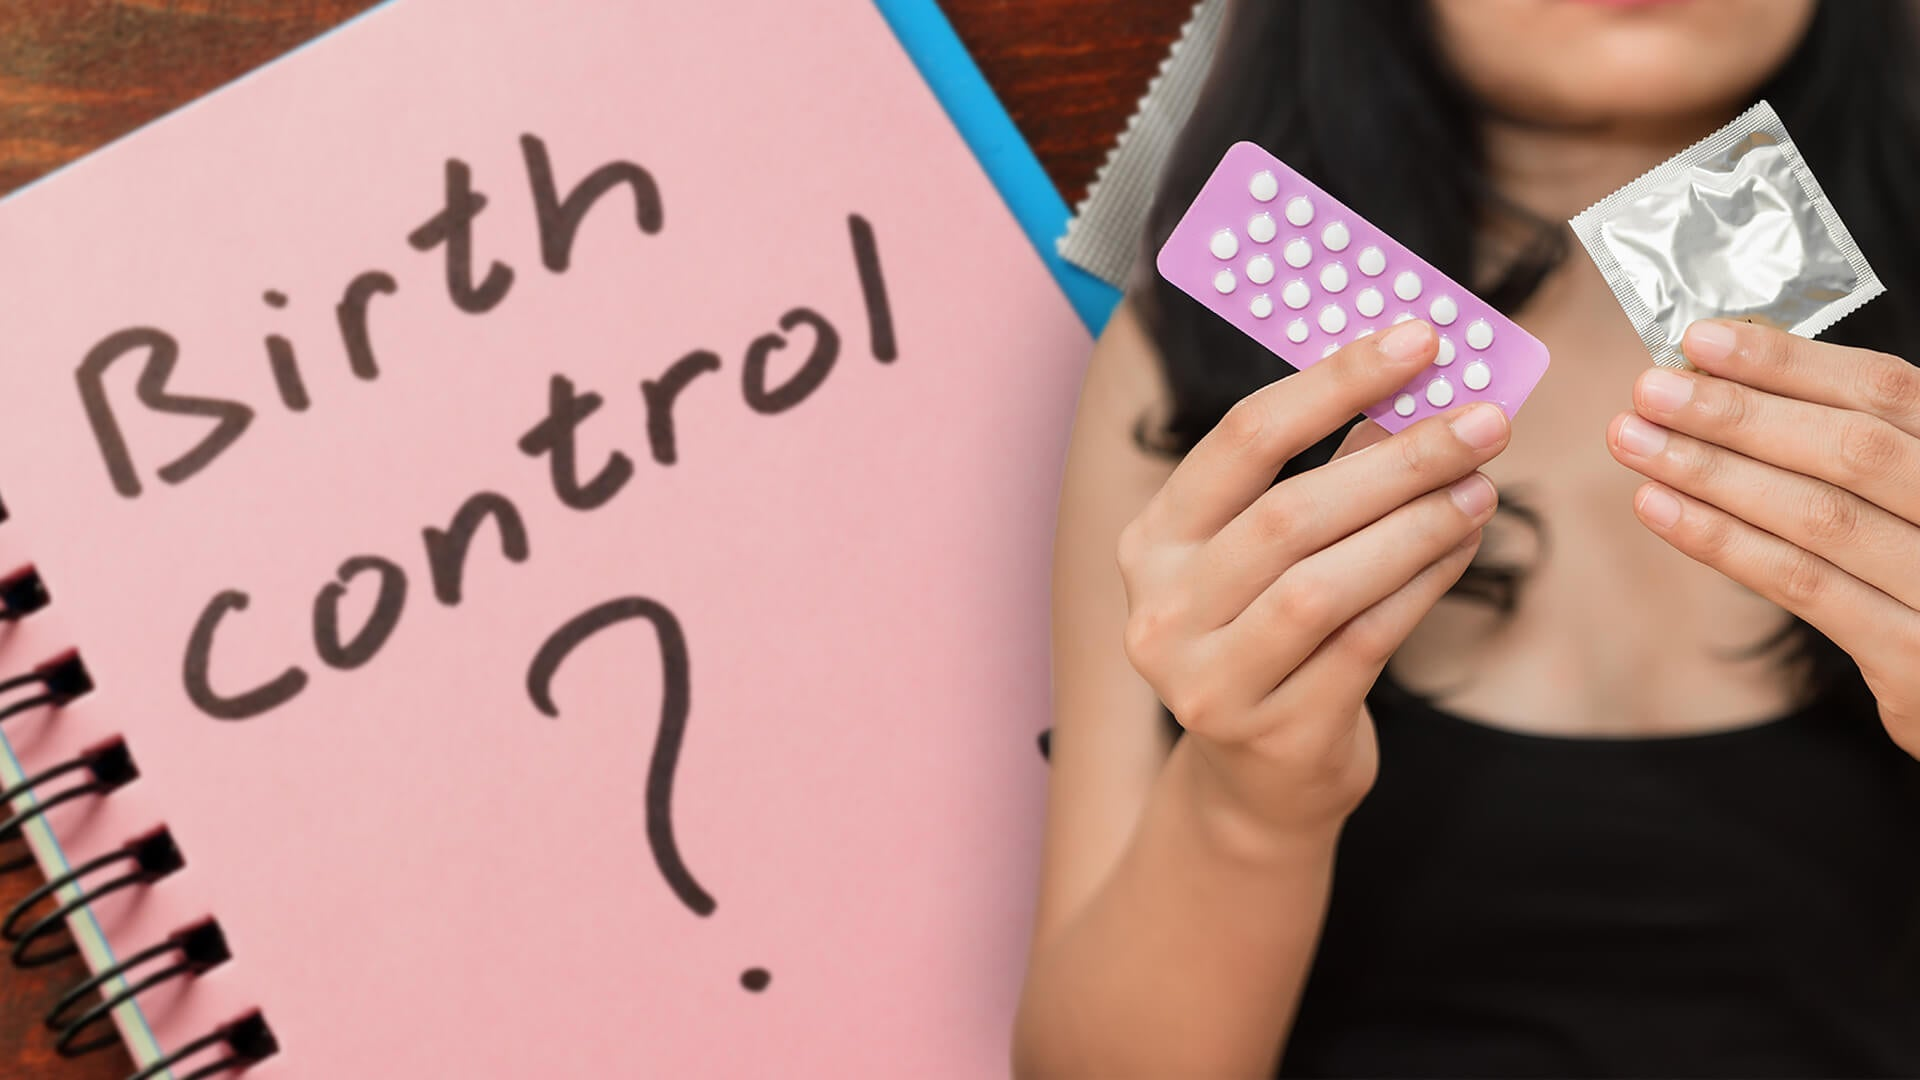 Birth Control Options and Nightmares | Live Q&A with Dr. Purser